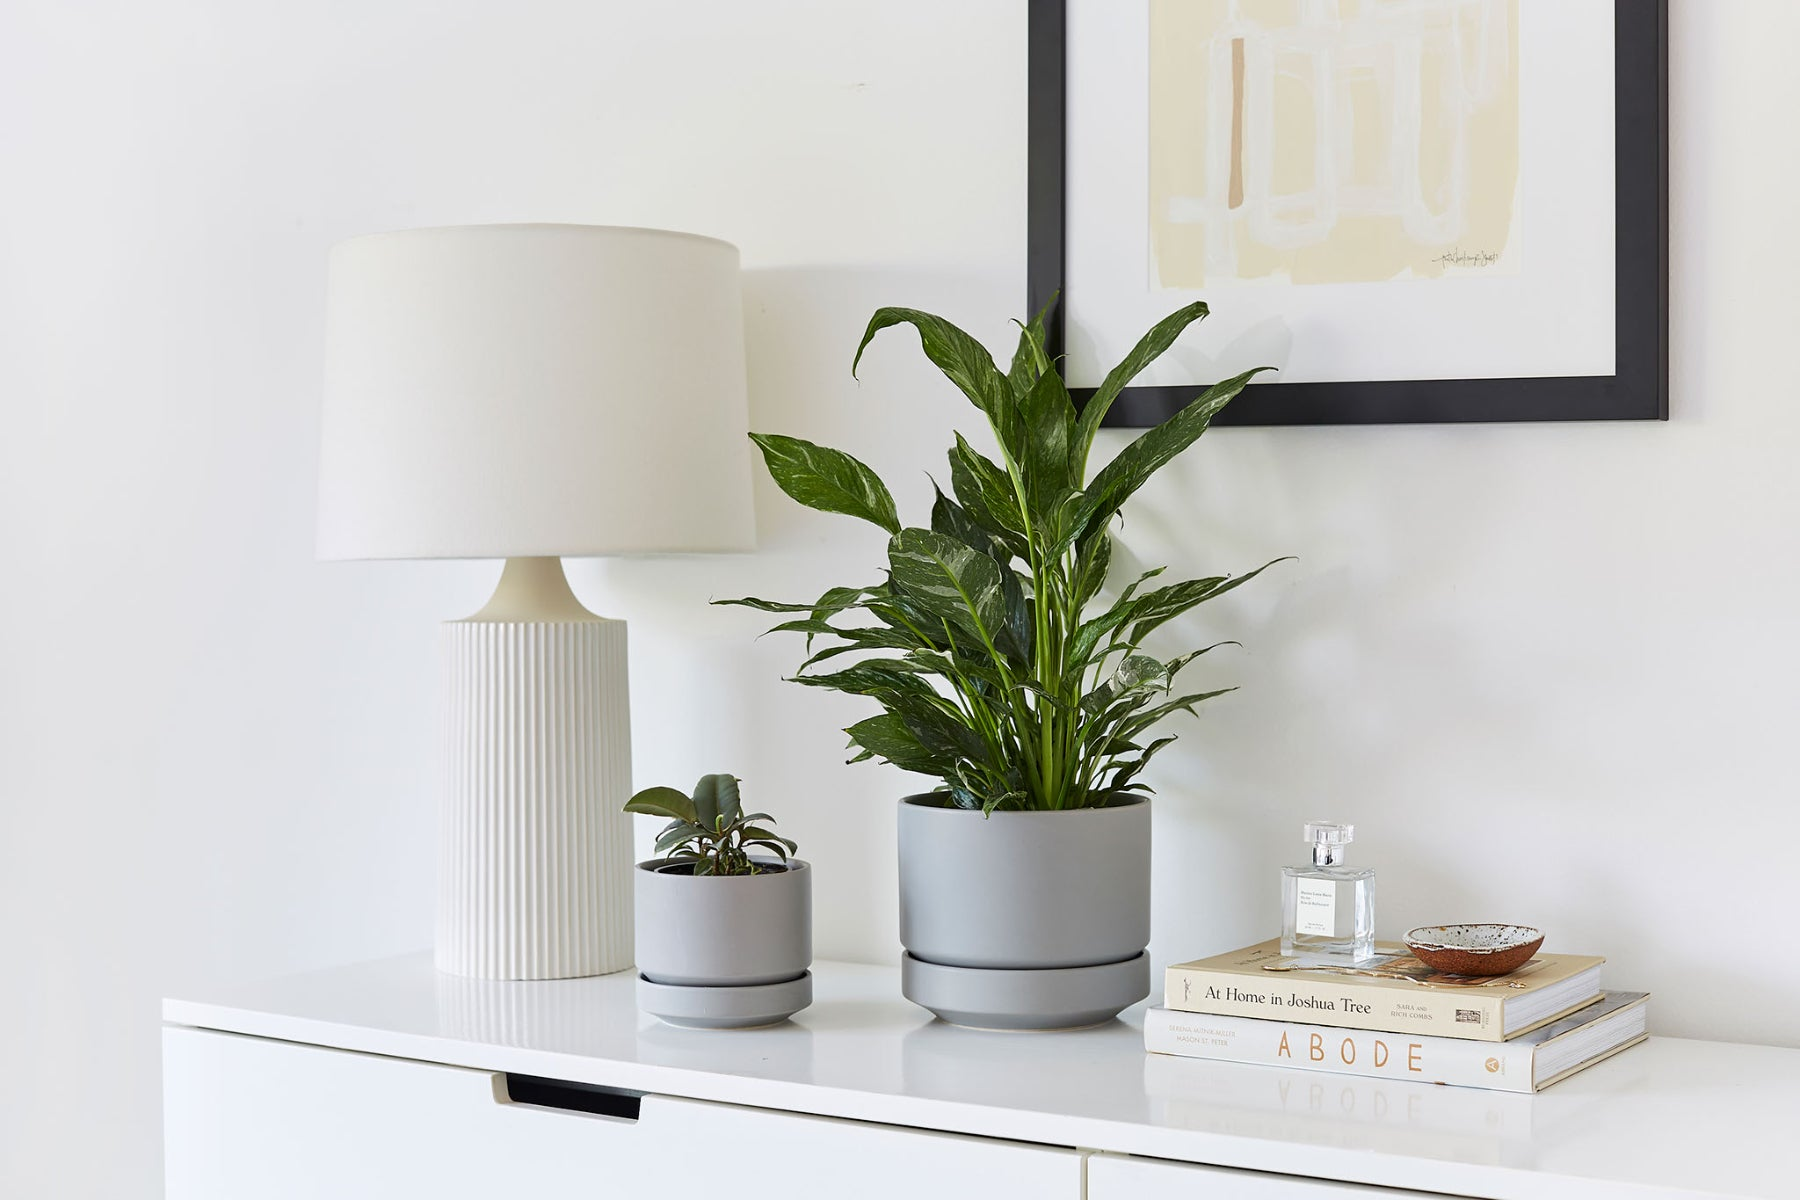 Styling Revival Ceramics in a Minimalist Space